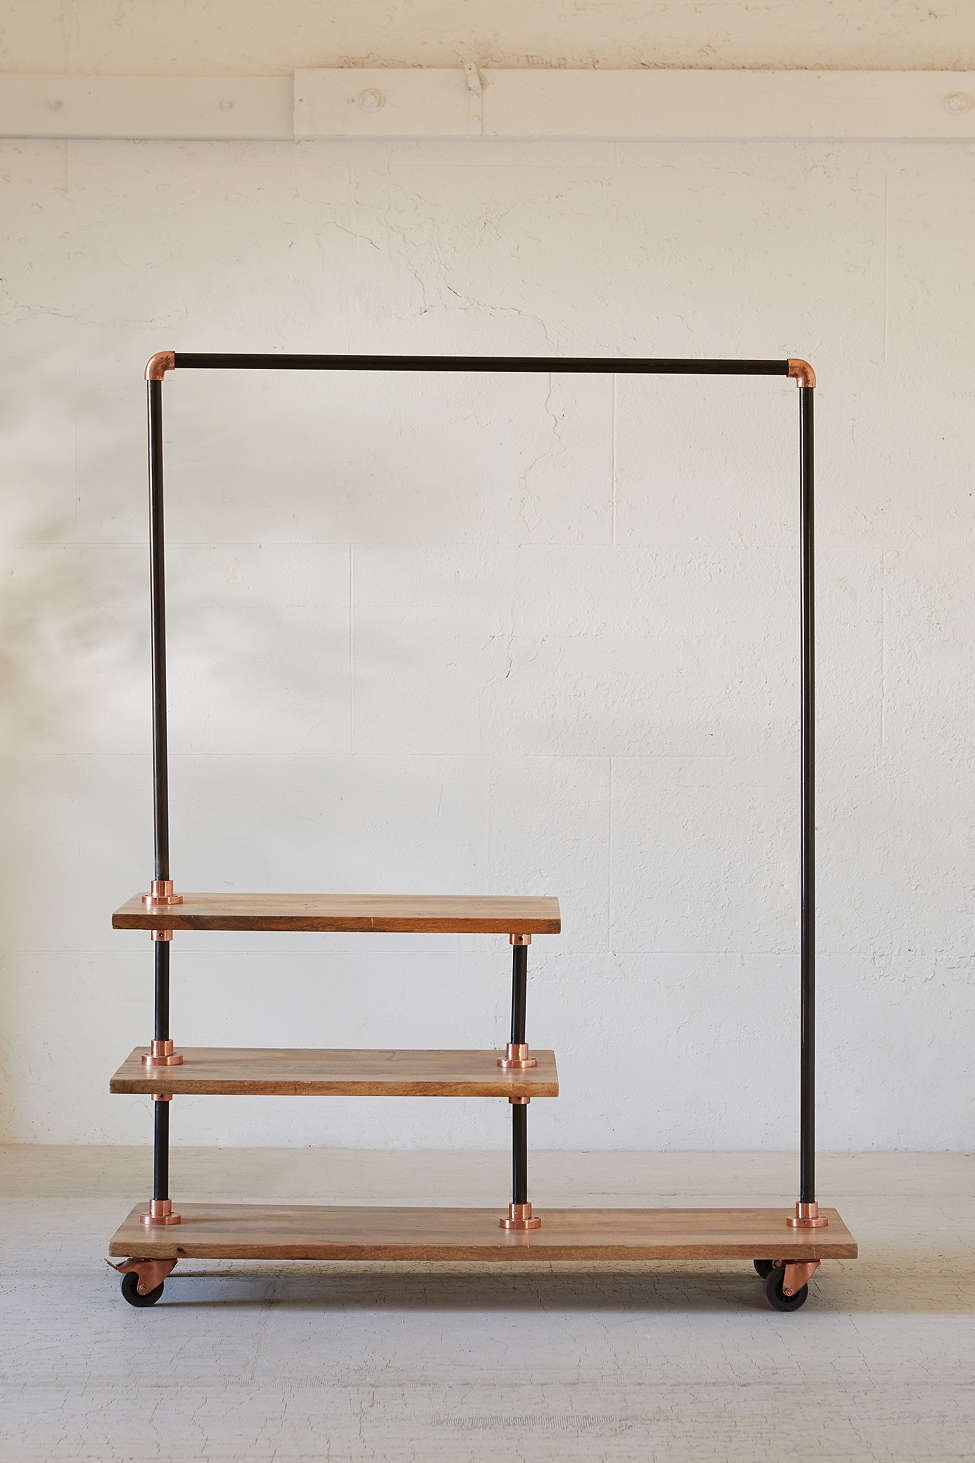 Would love to diy this look by buying a black metal clothes rack and adding reclaimed wood shelving to it